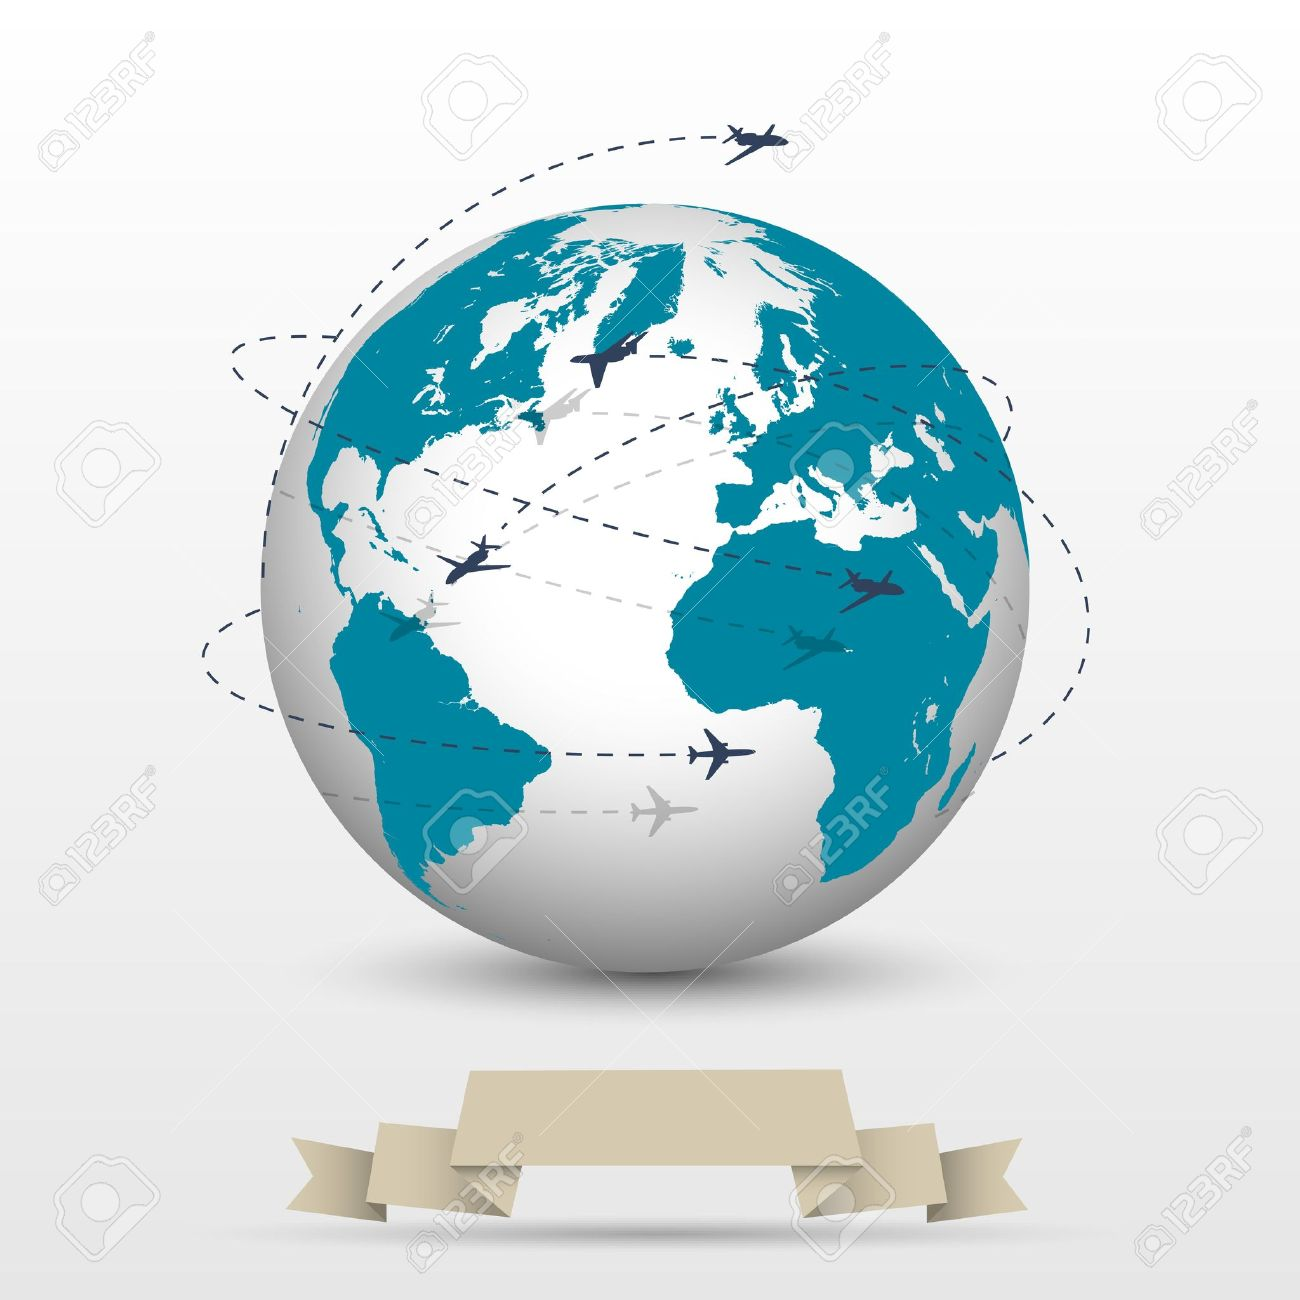 Airplane Flying Around The World Clipart.